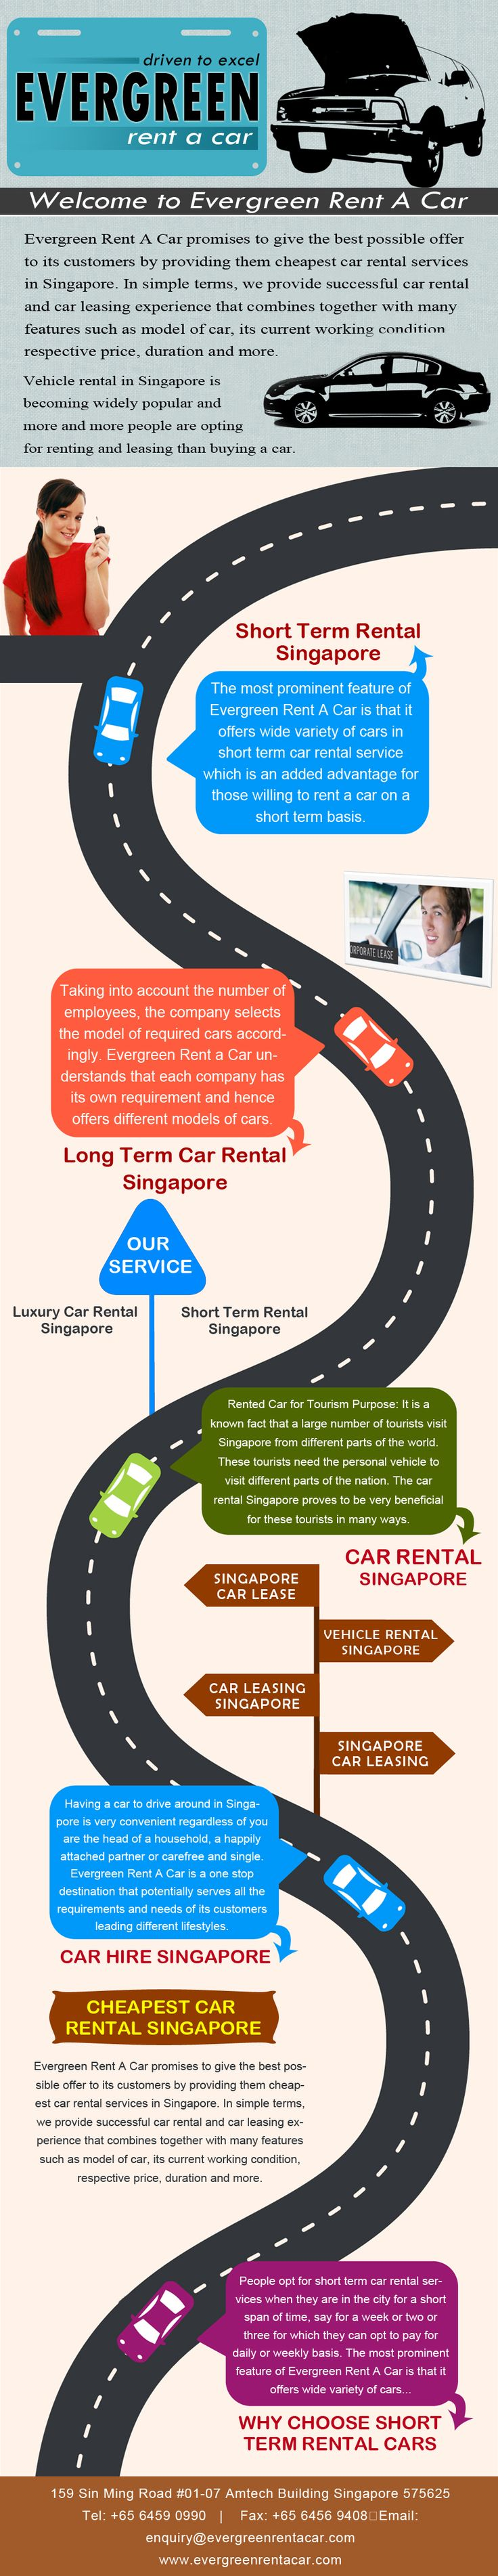 Evergreen rent a car provides the the best deal on personal budget car rental and car